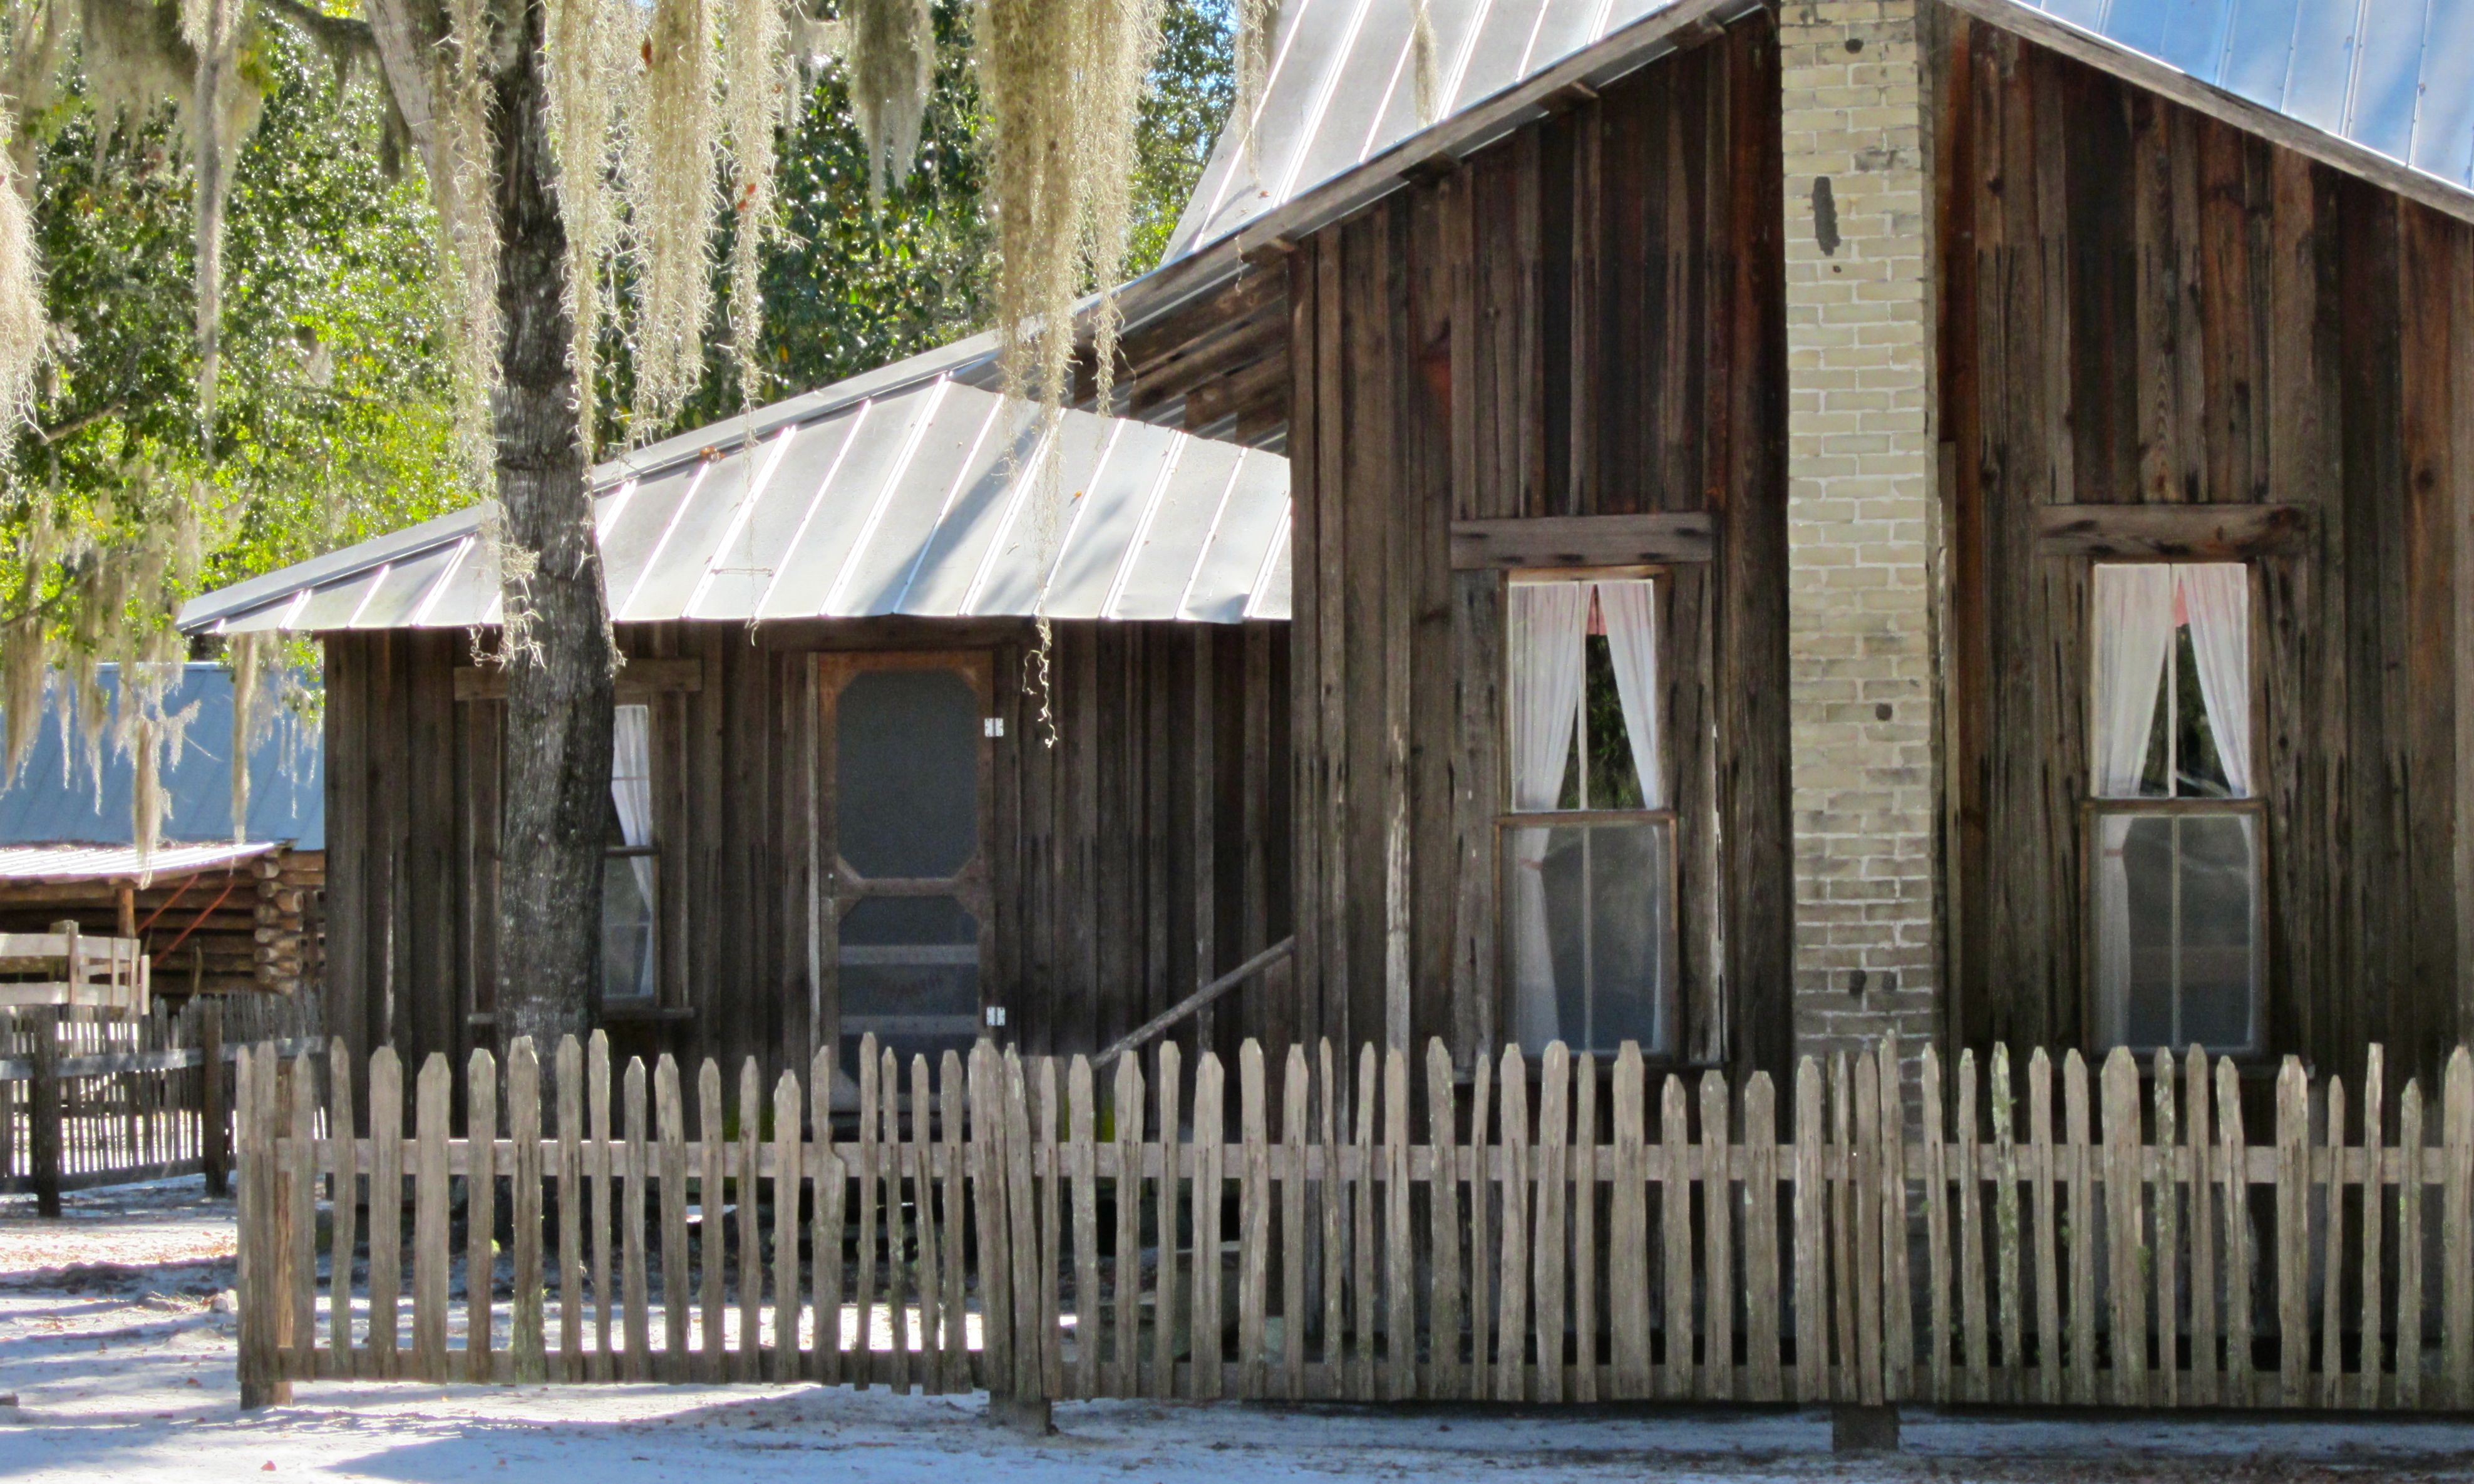 Living off the grid in the okefenokee swamp gallivance for Board and batten cabin plans